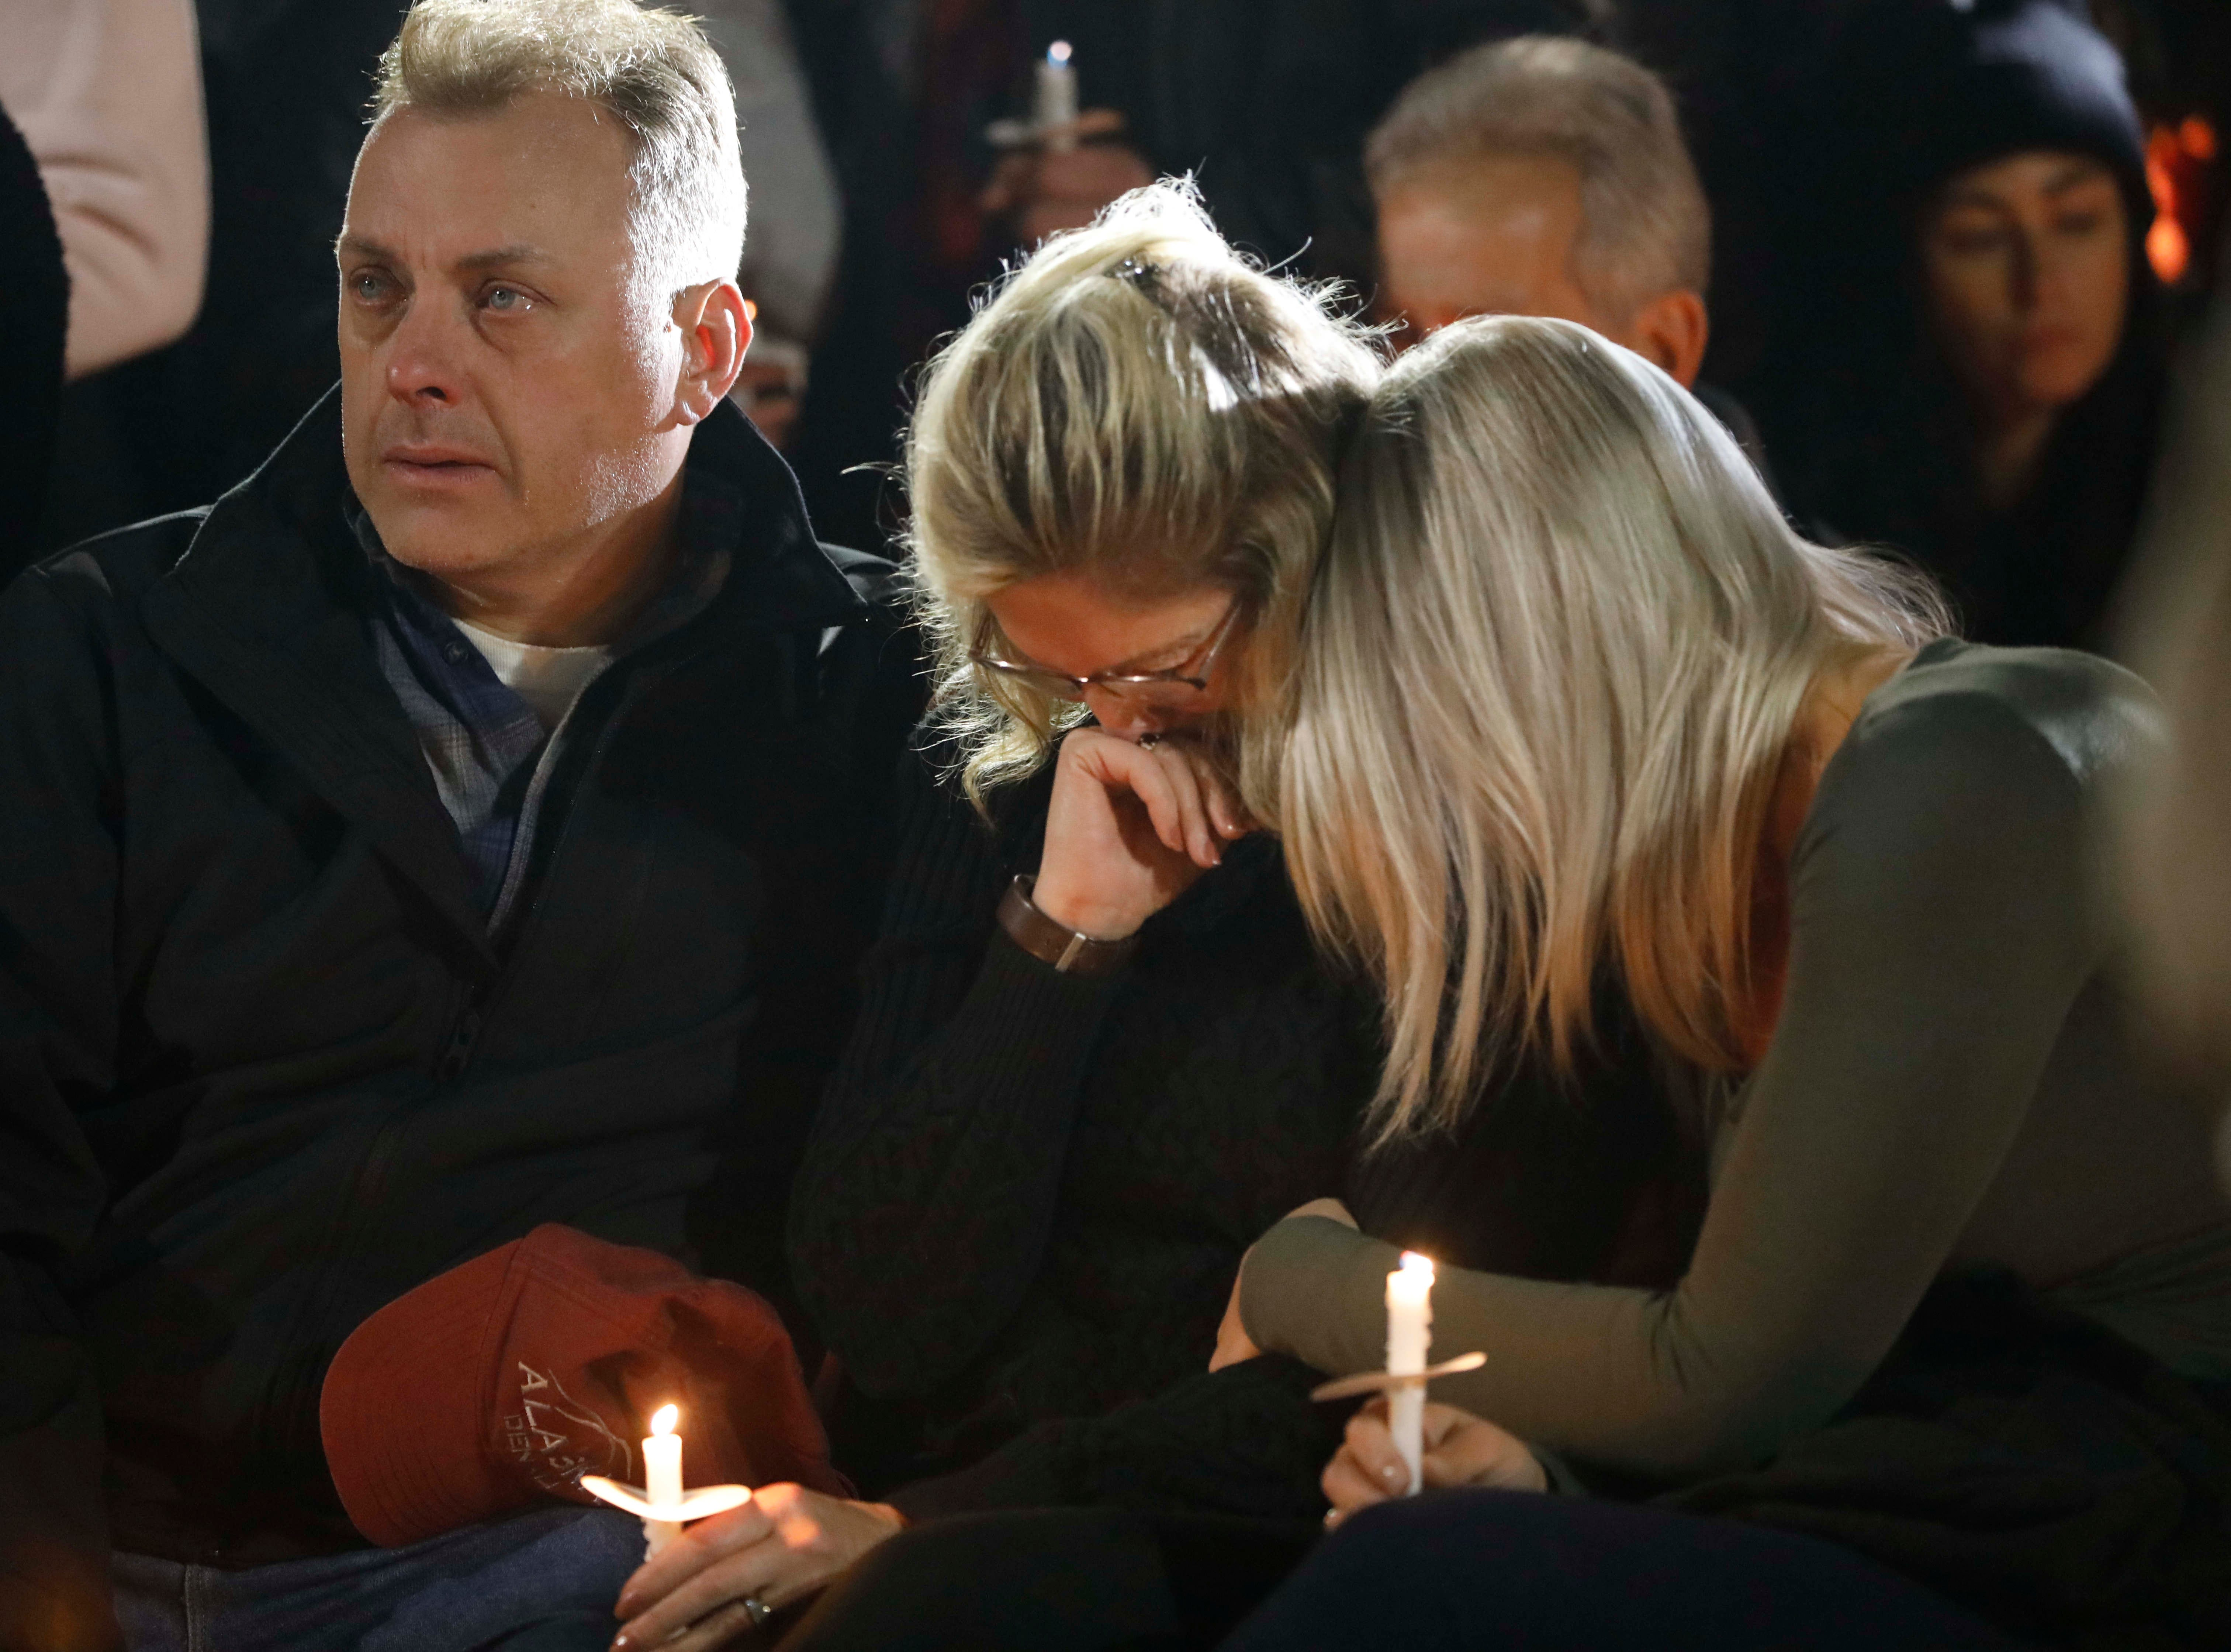 Family members console one another at the The Mohawk Valley Gateway Overlook Bridge in the City of Amsterdam on Oct. 8, 2018, during a candlelight vigil for the 20 people who were killed in a limousine accident in Schoharie on Saturday. on Oct. 8, 2018.